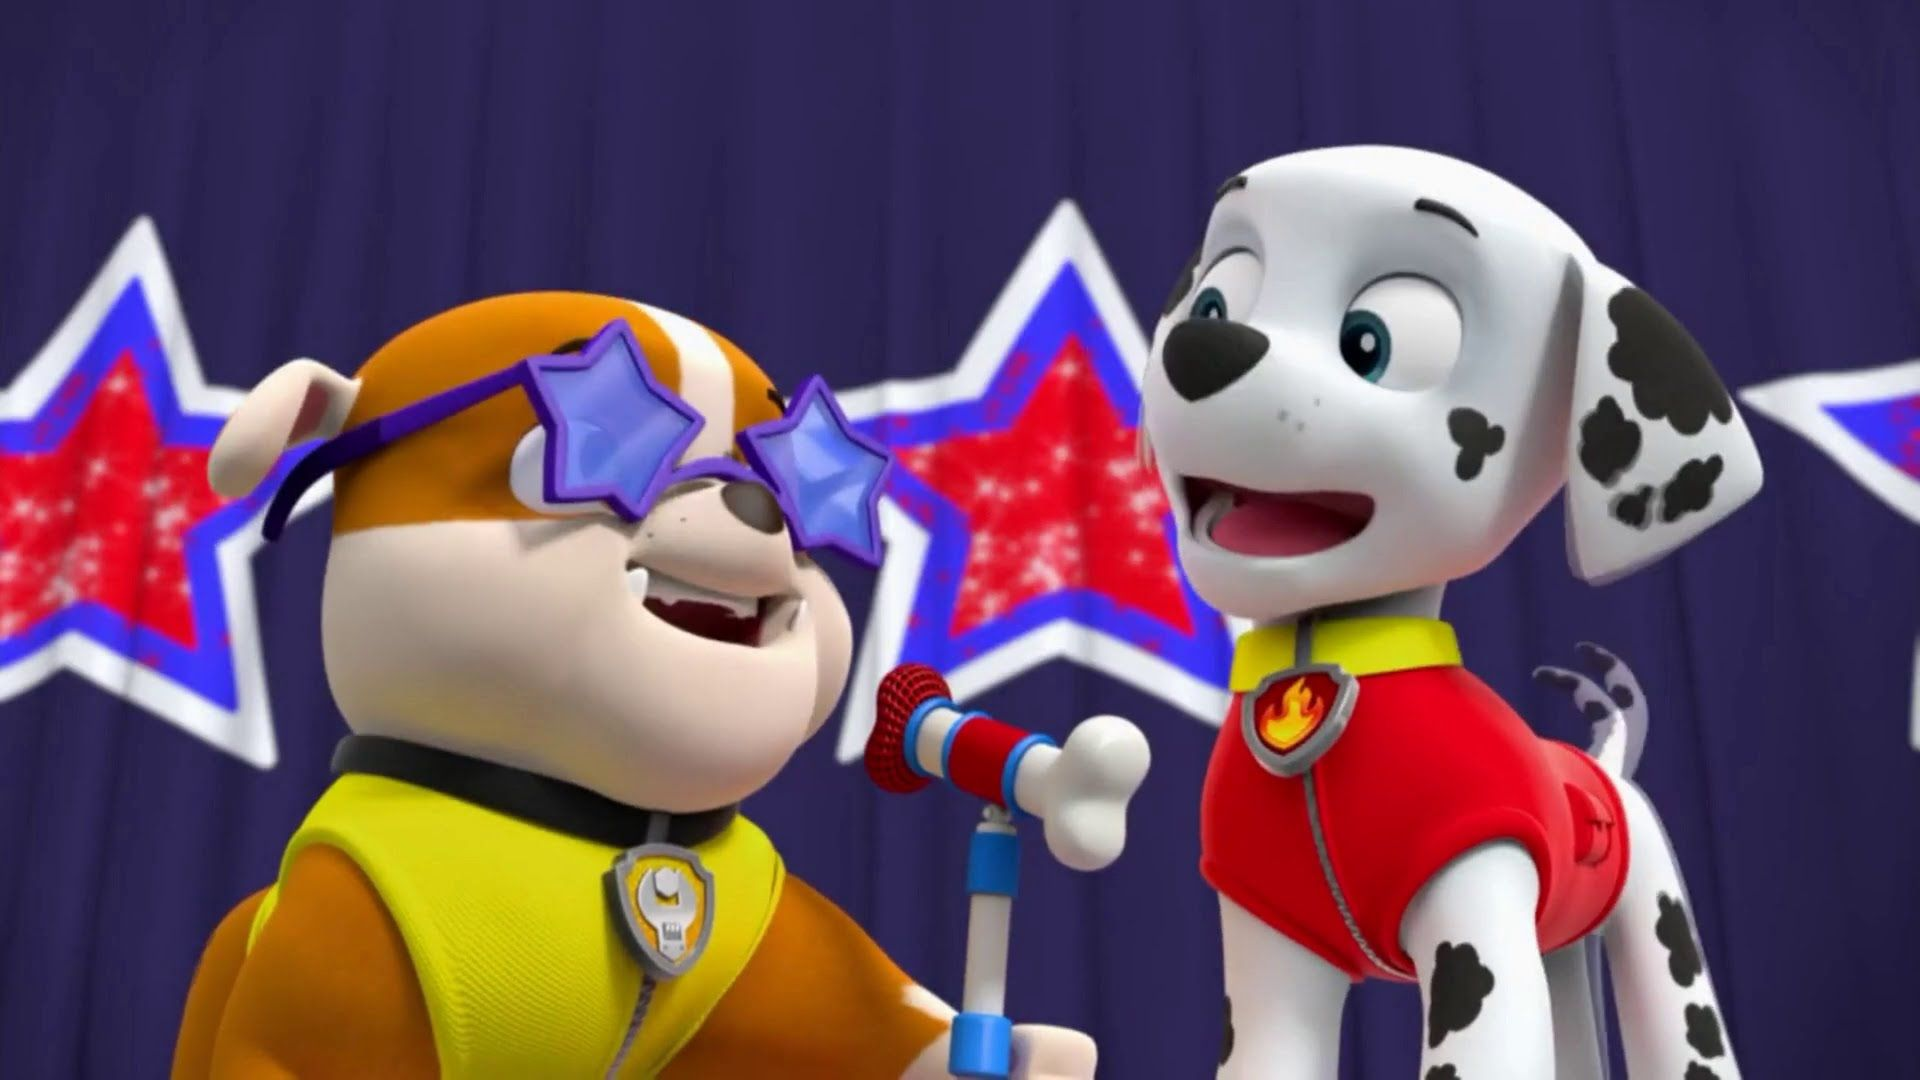 Paw Patrol Thanksgiving Coloring Pages To Print : Paw patrol u you can call on me talent show song north american